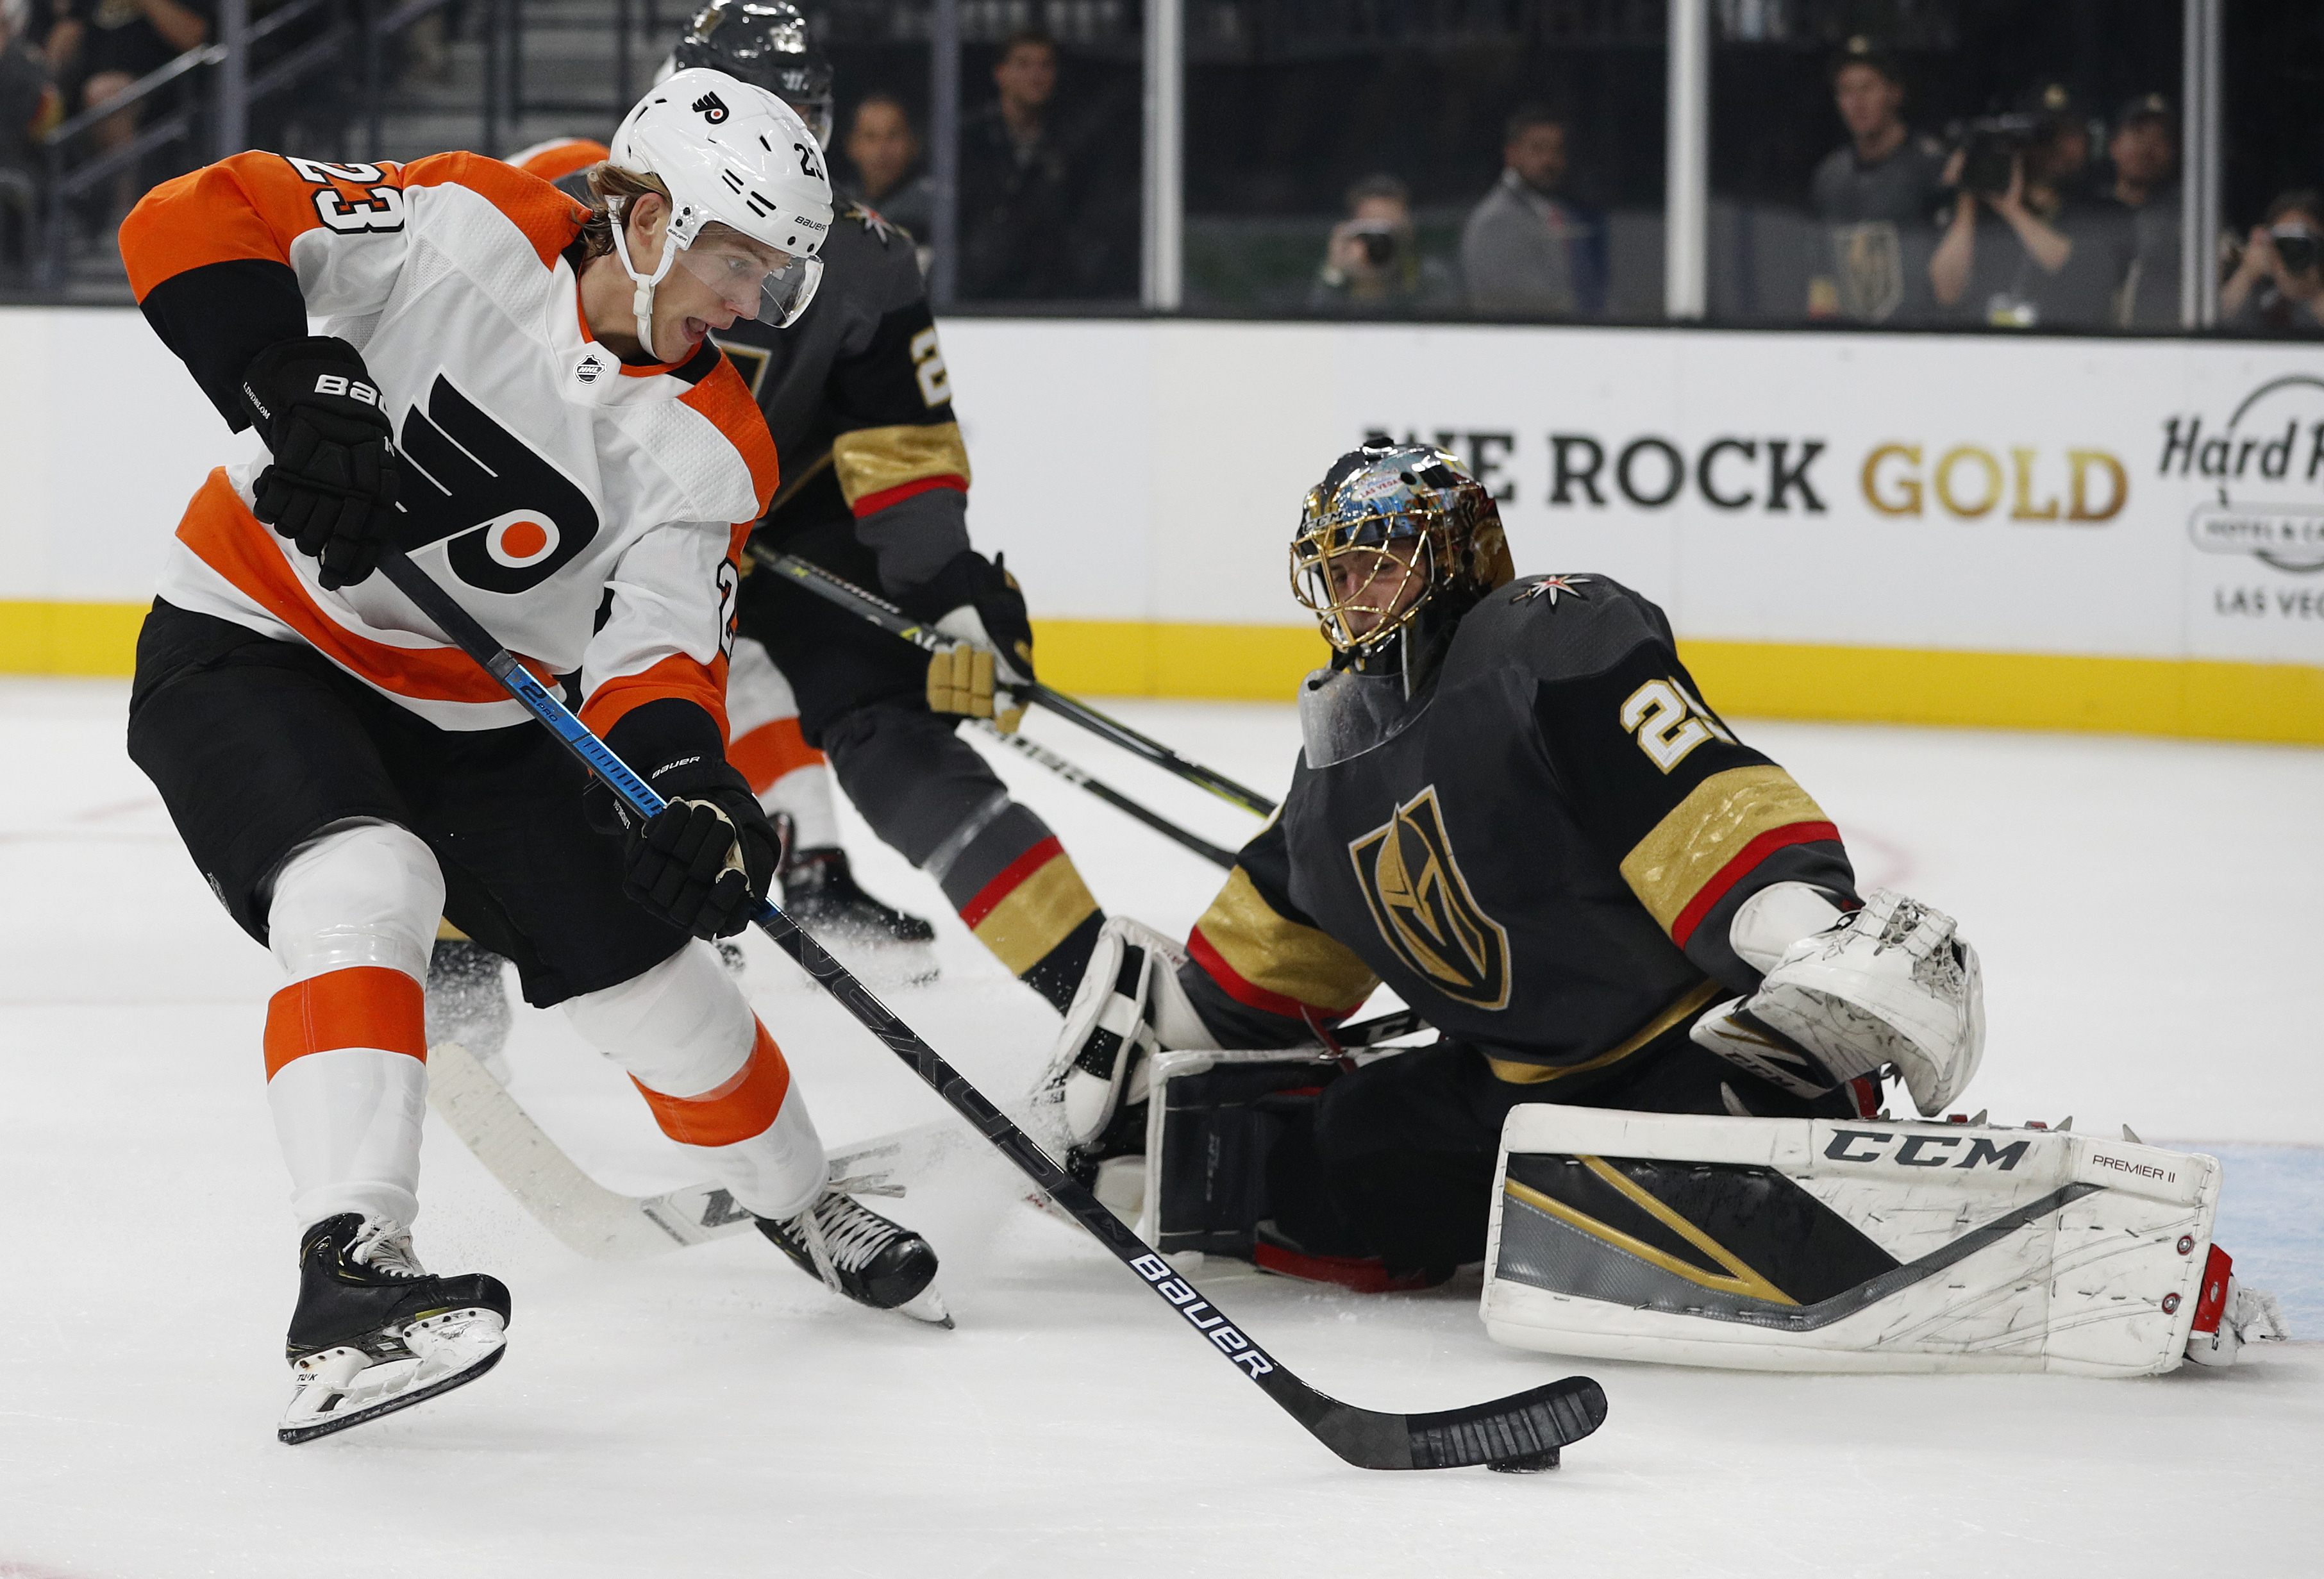 Simmonds nets two for Flyers in 5-2 win over Vegas